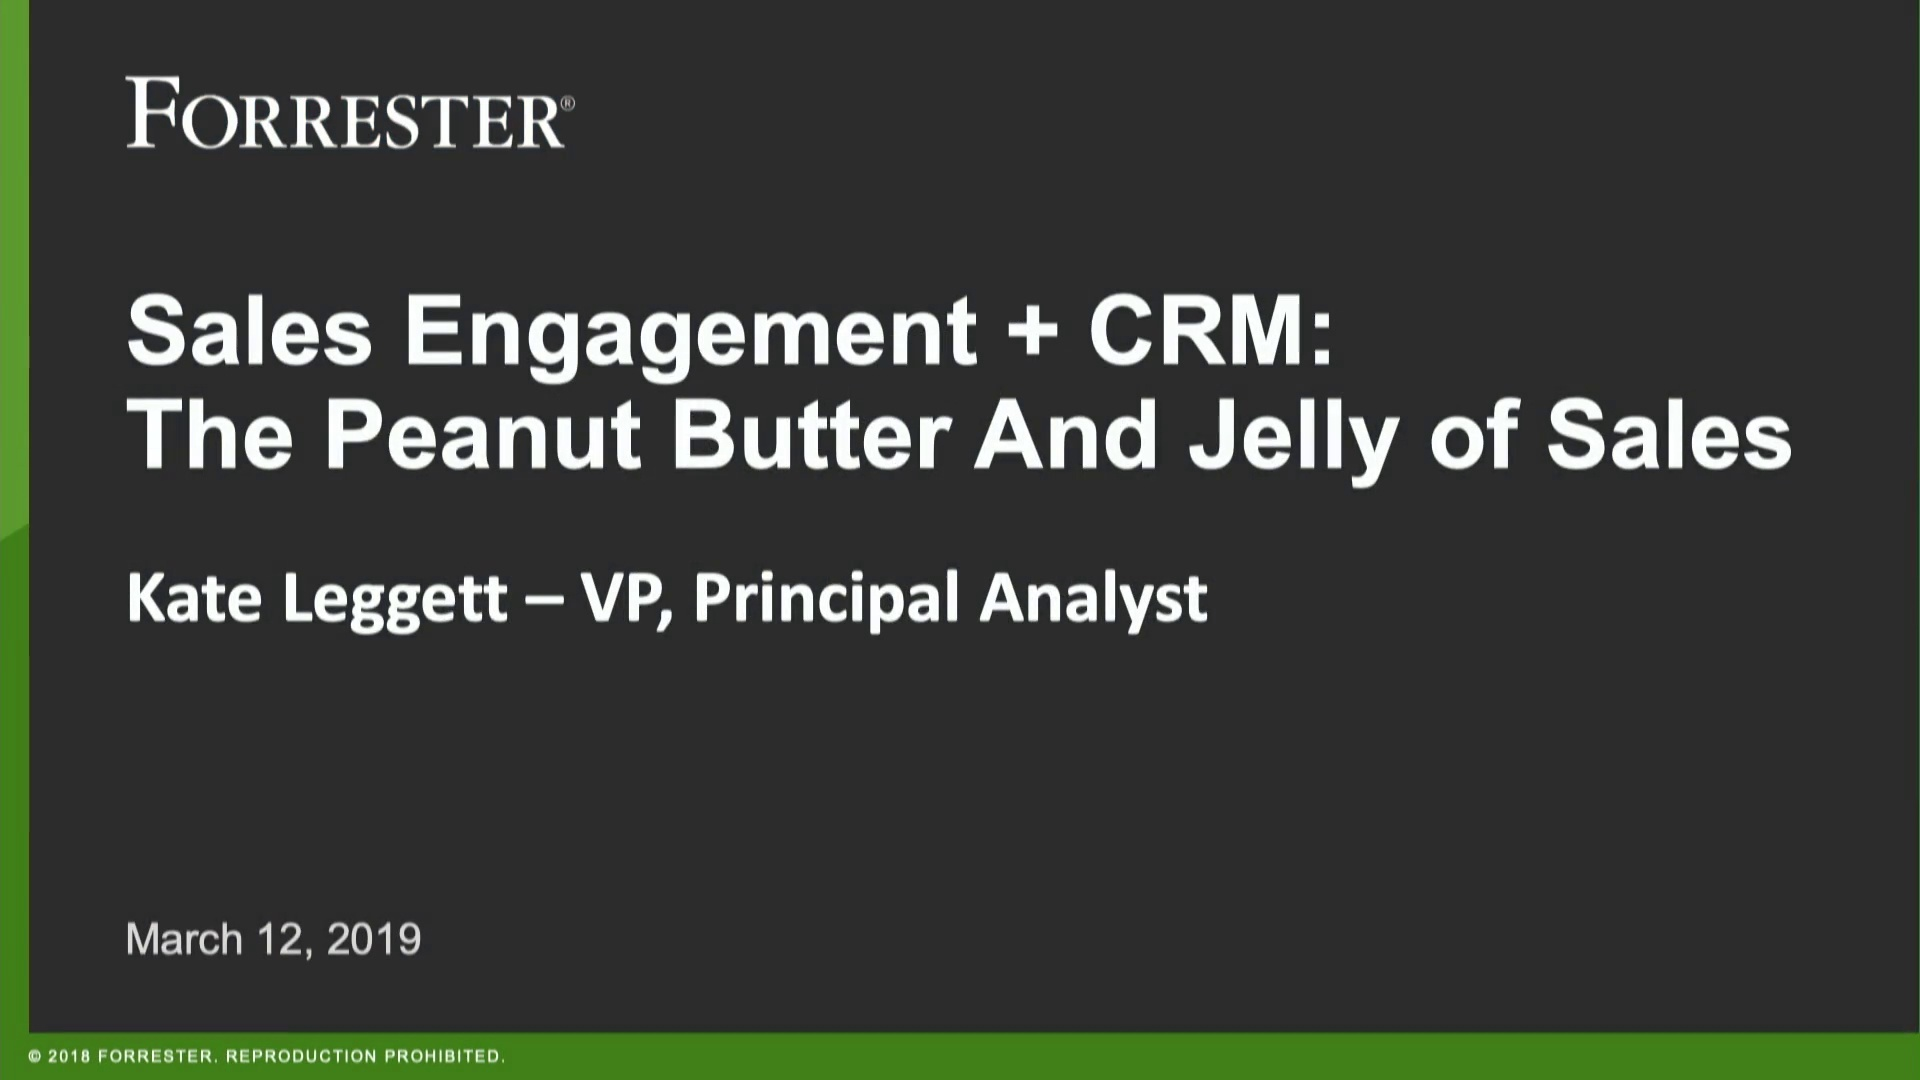 Sales Engagement Platforms Drive Retention and Revenue, How to Make it Work with CRM - Kate Leggett